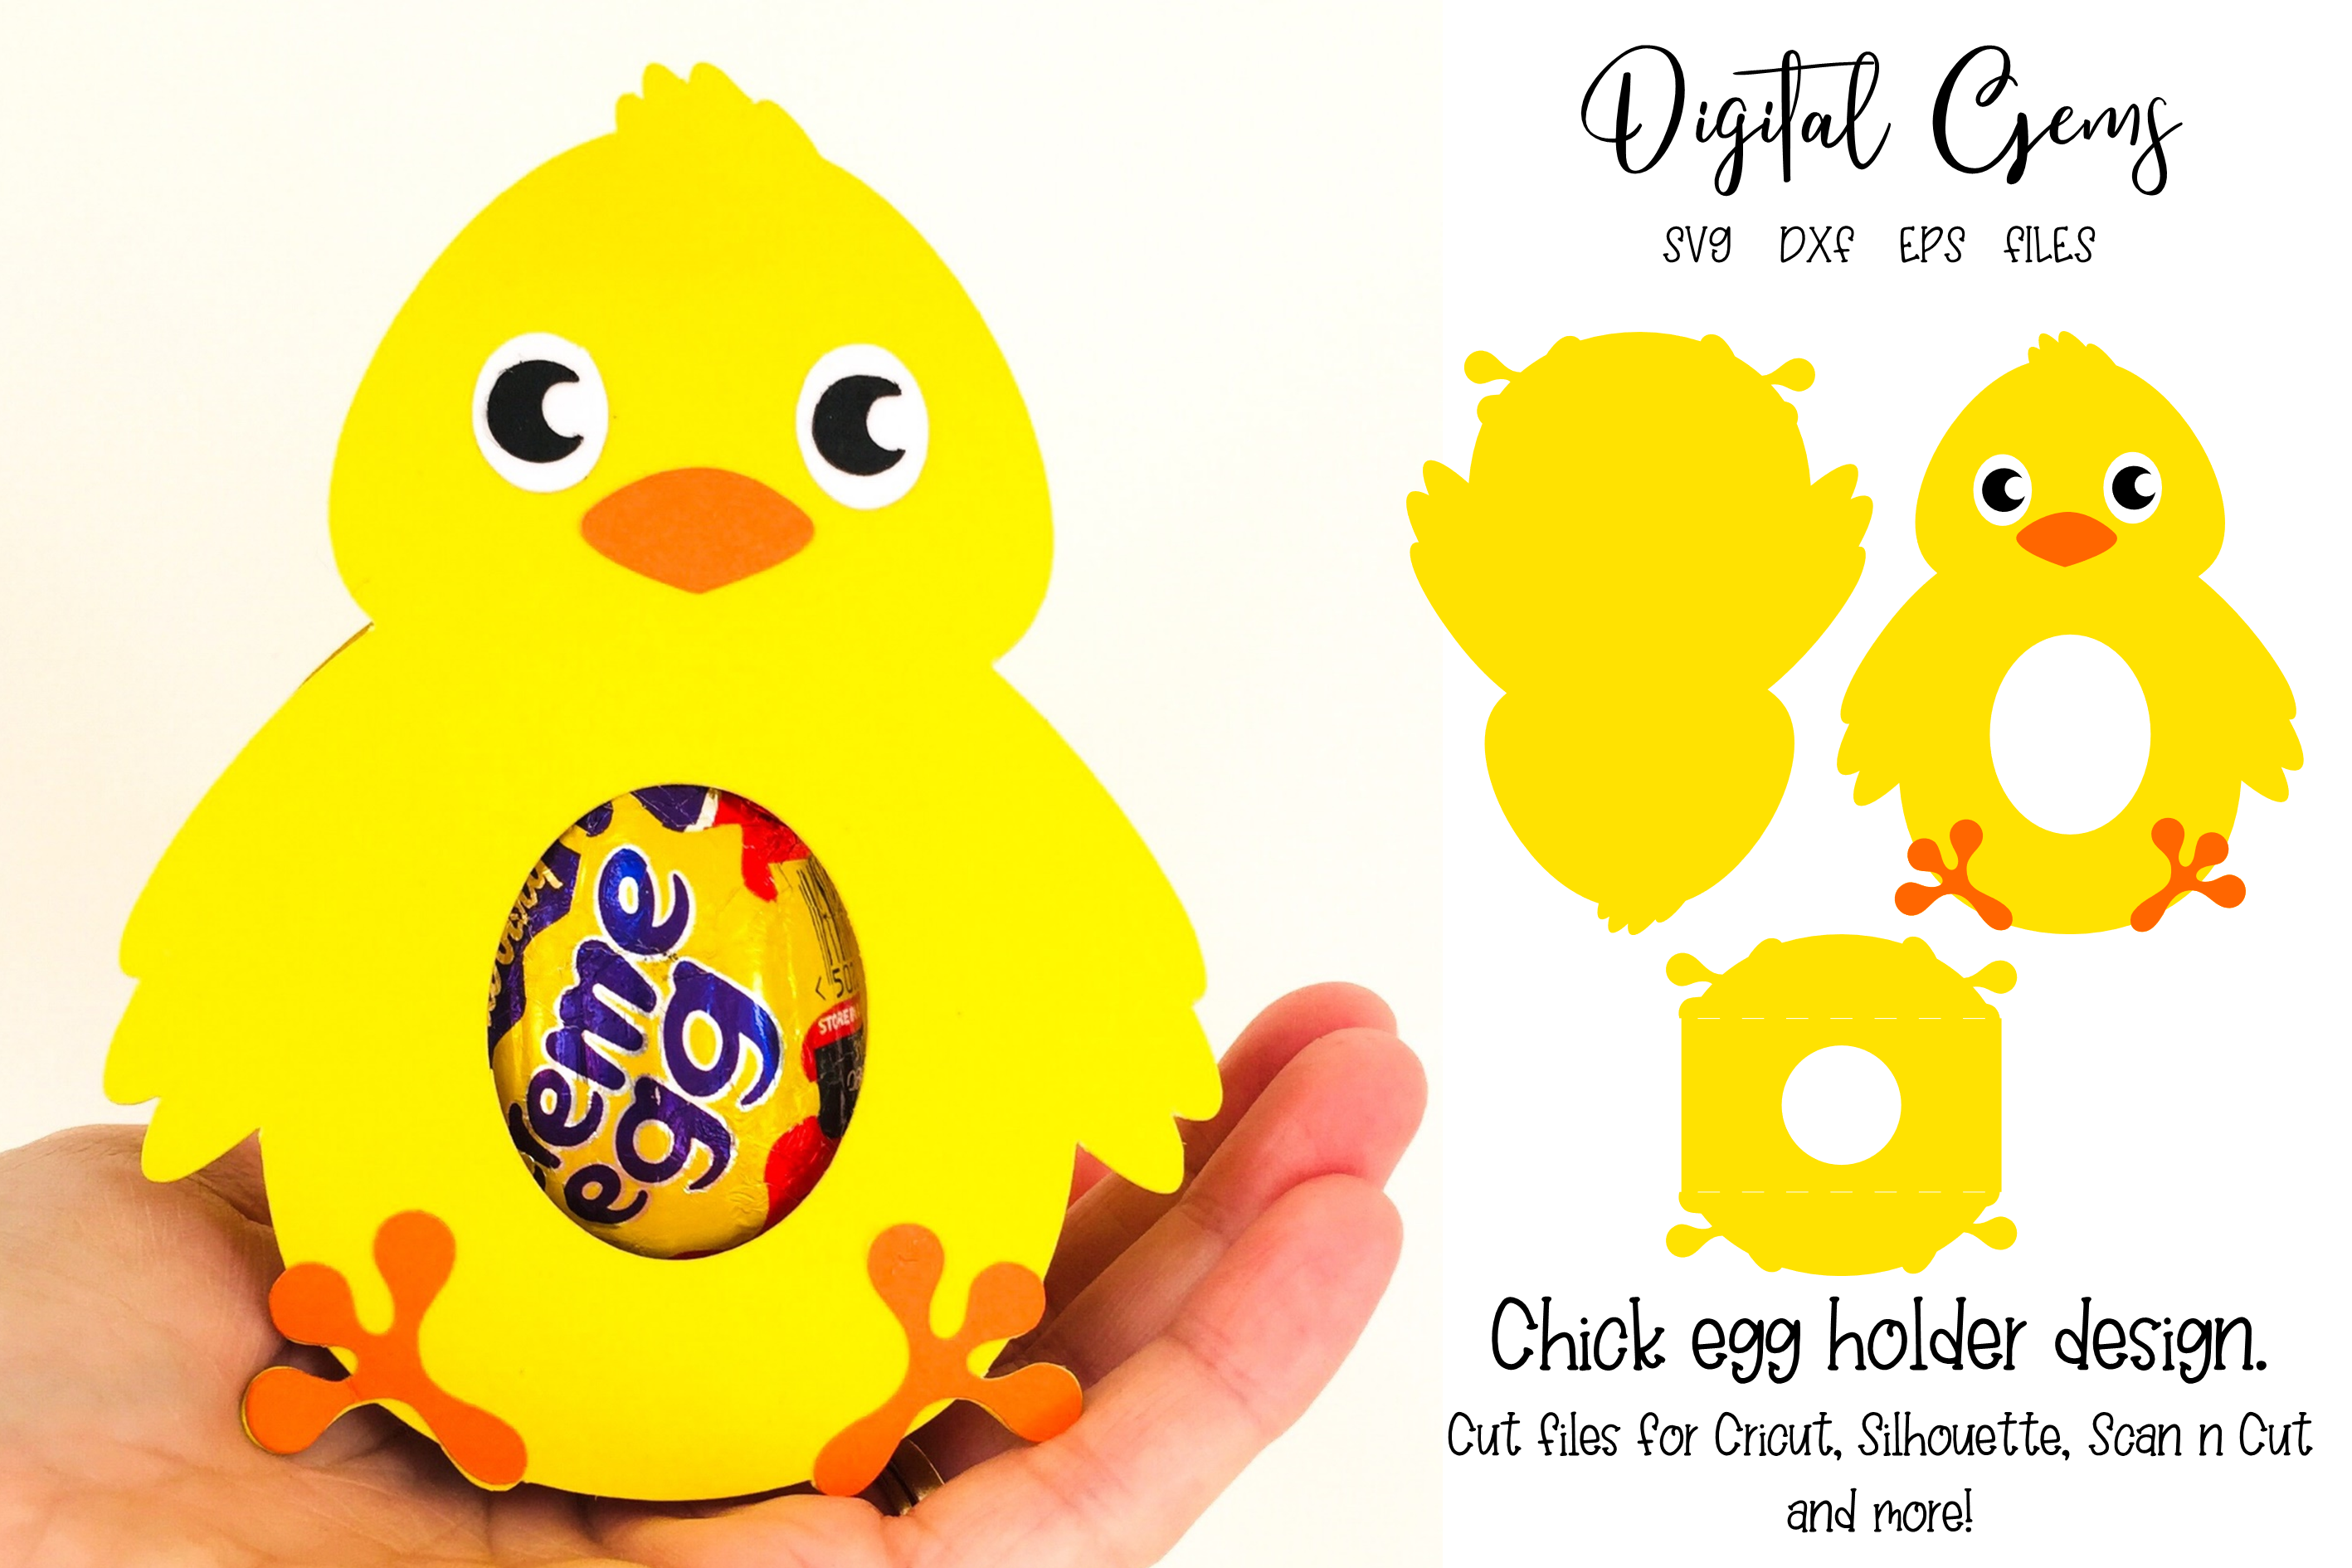 Download Free Chick Egg Holder Design Graphic By Digital Gems Creative Fabrica for Cricut Explore, Silhouette and other cutting machines.